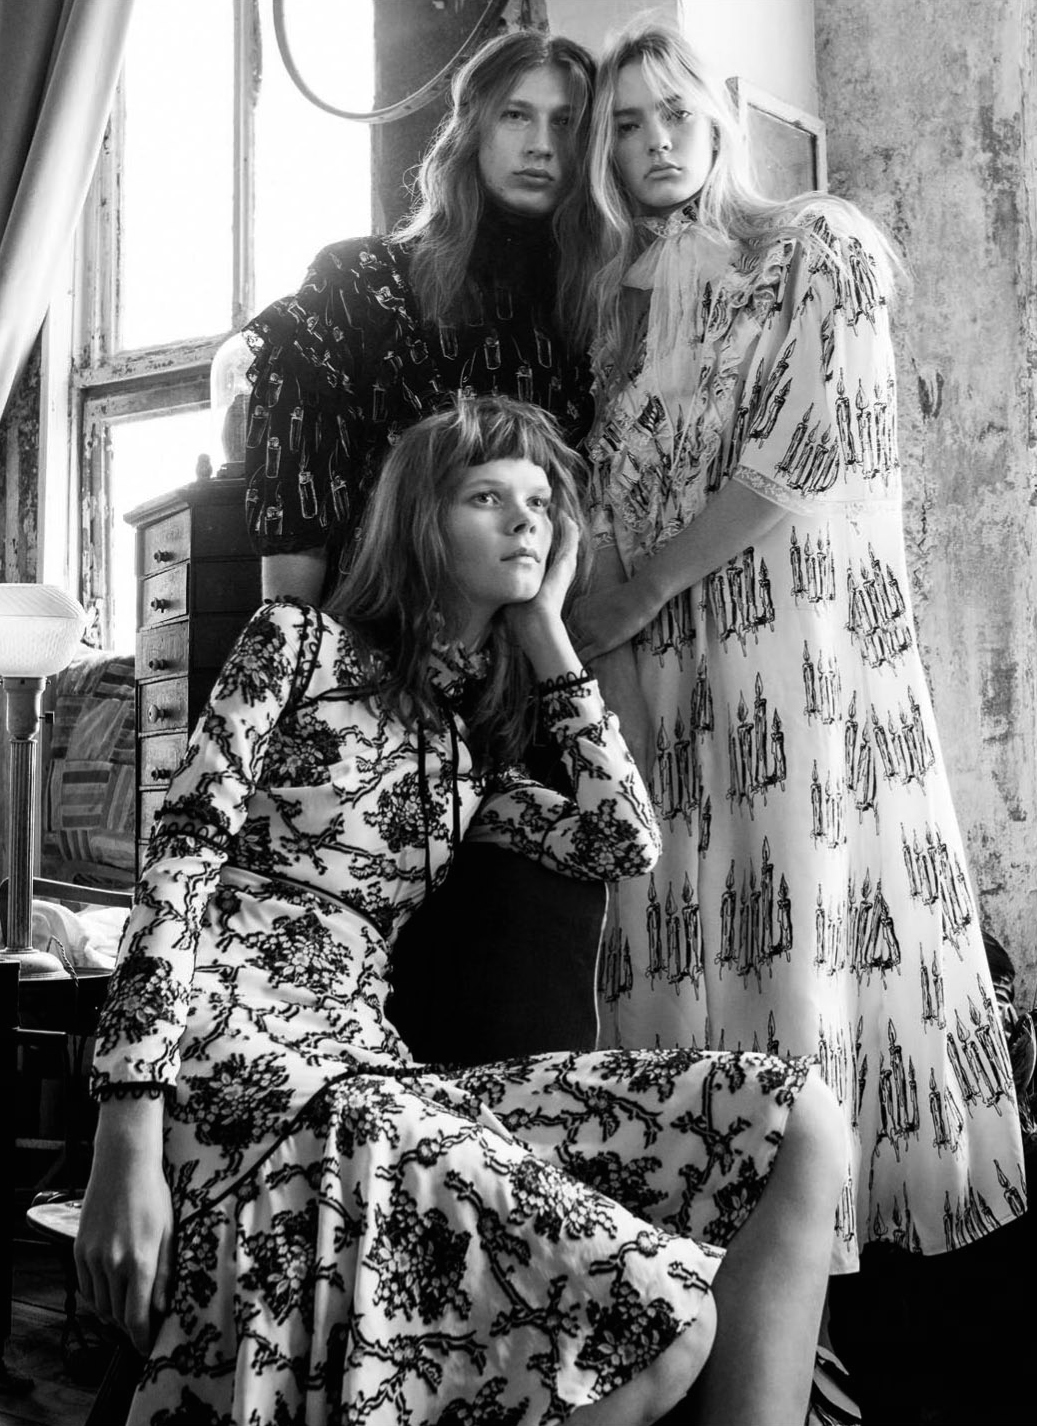 The Dreamers - Irina Kravchenko And Steph Smith By Sebastian Kim For Vogue Russia March 2016